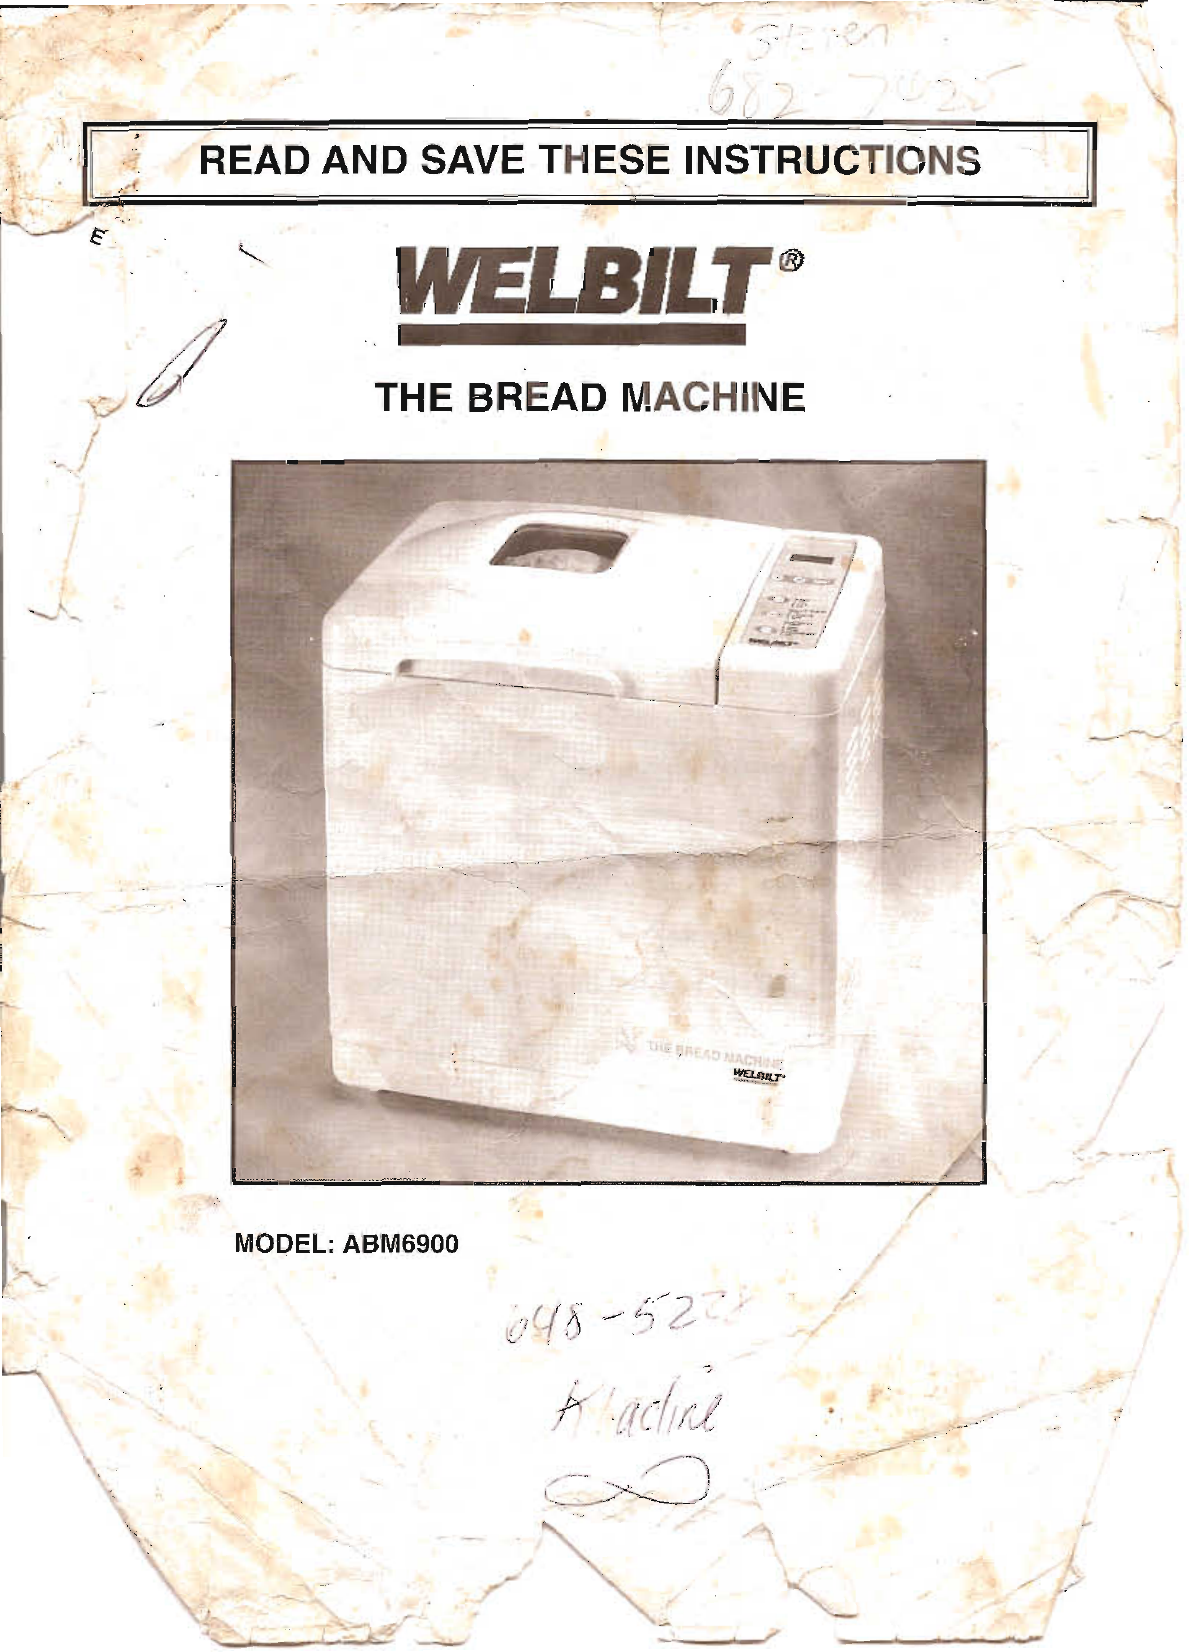 welbilt bread maker abm6900 user guide manualsonline com rh kitchen manualsonline com Wel-Bilt ABM4100T Parts Bread Machine Welbilt ABM 8200 Manual